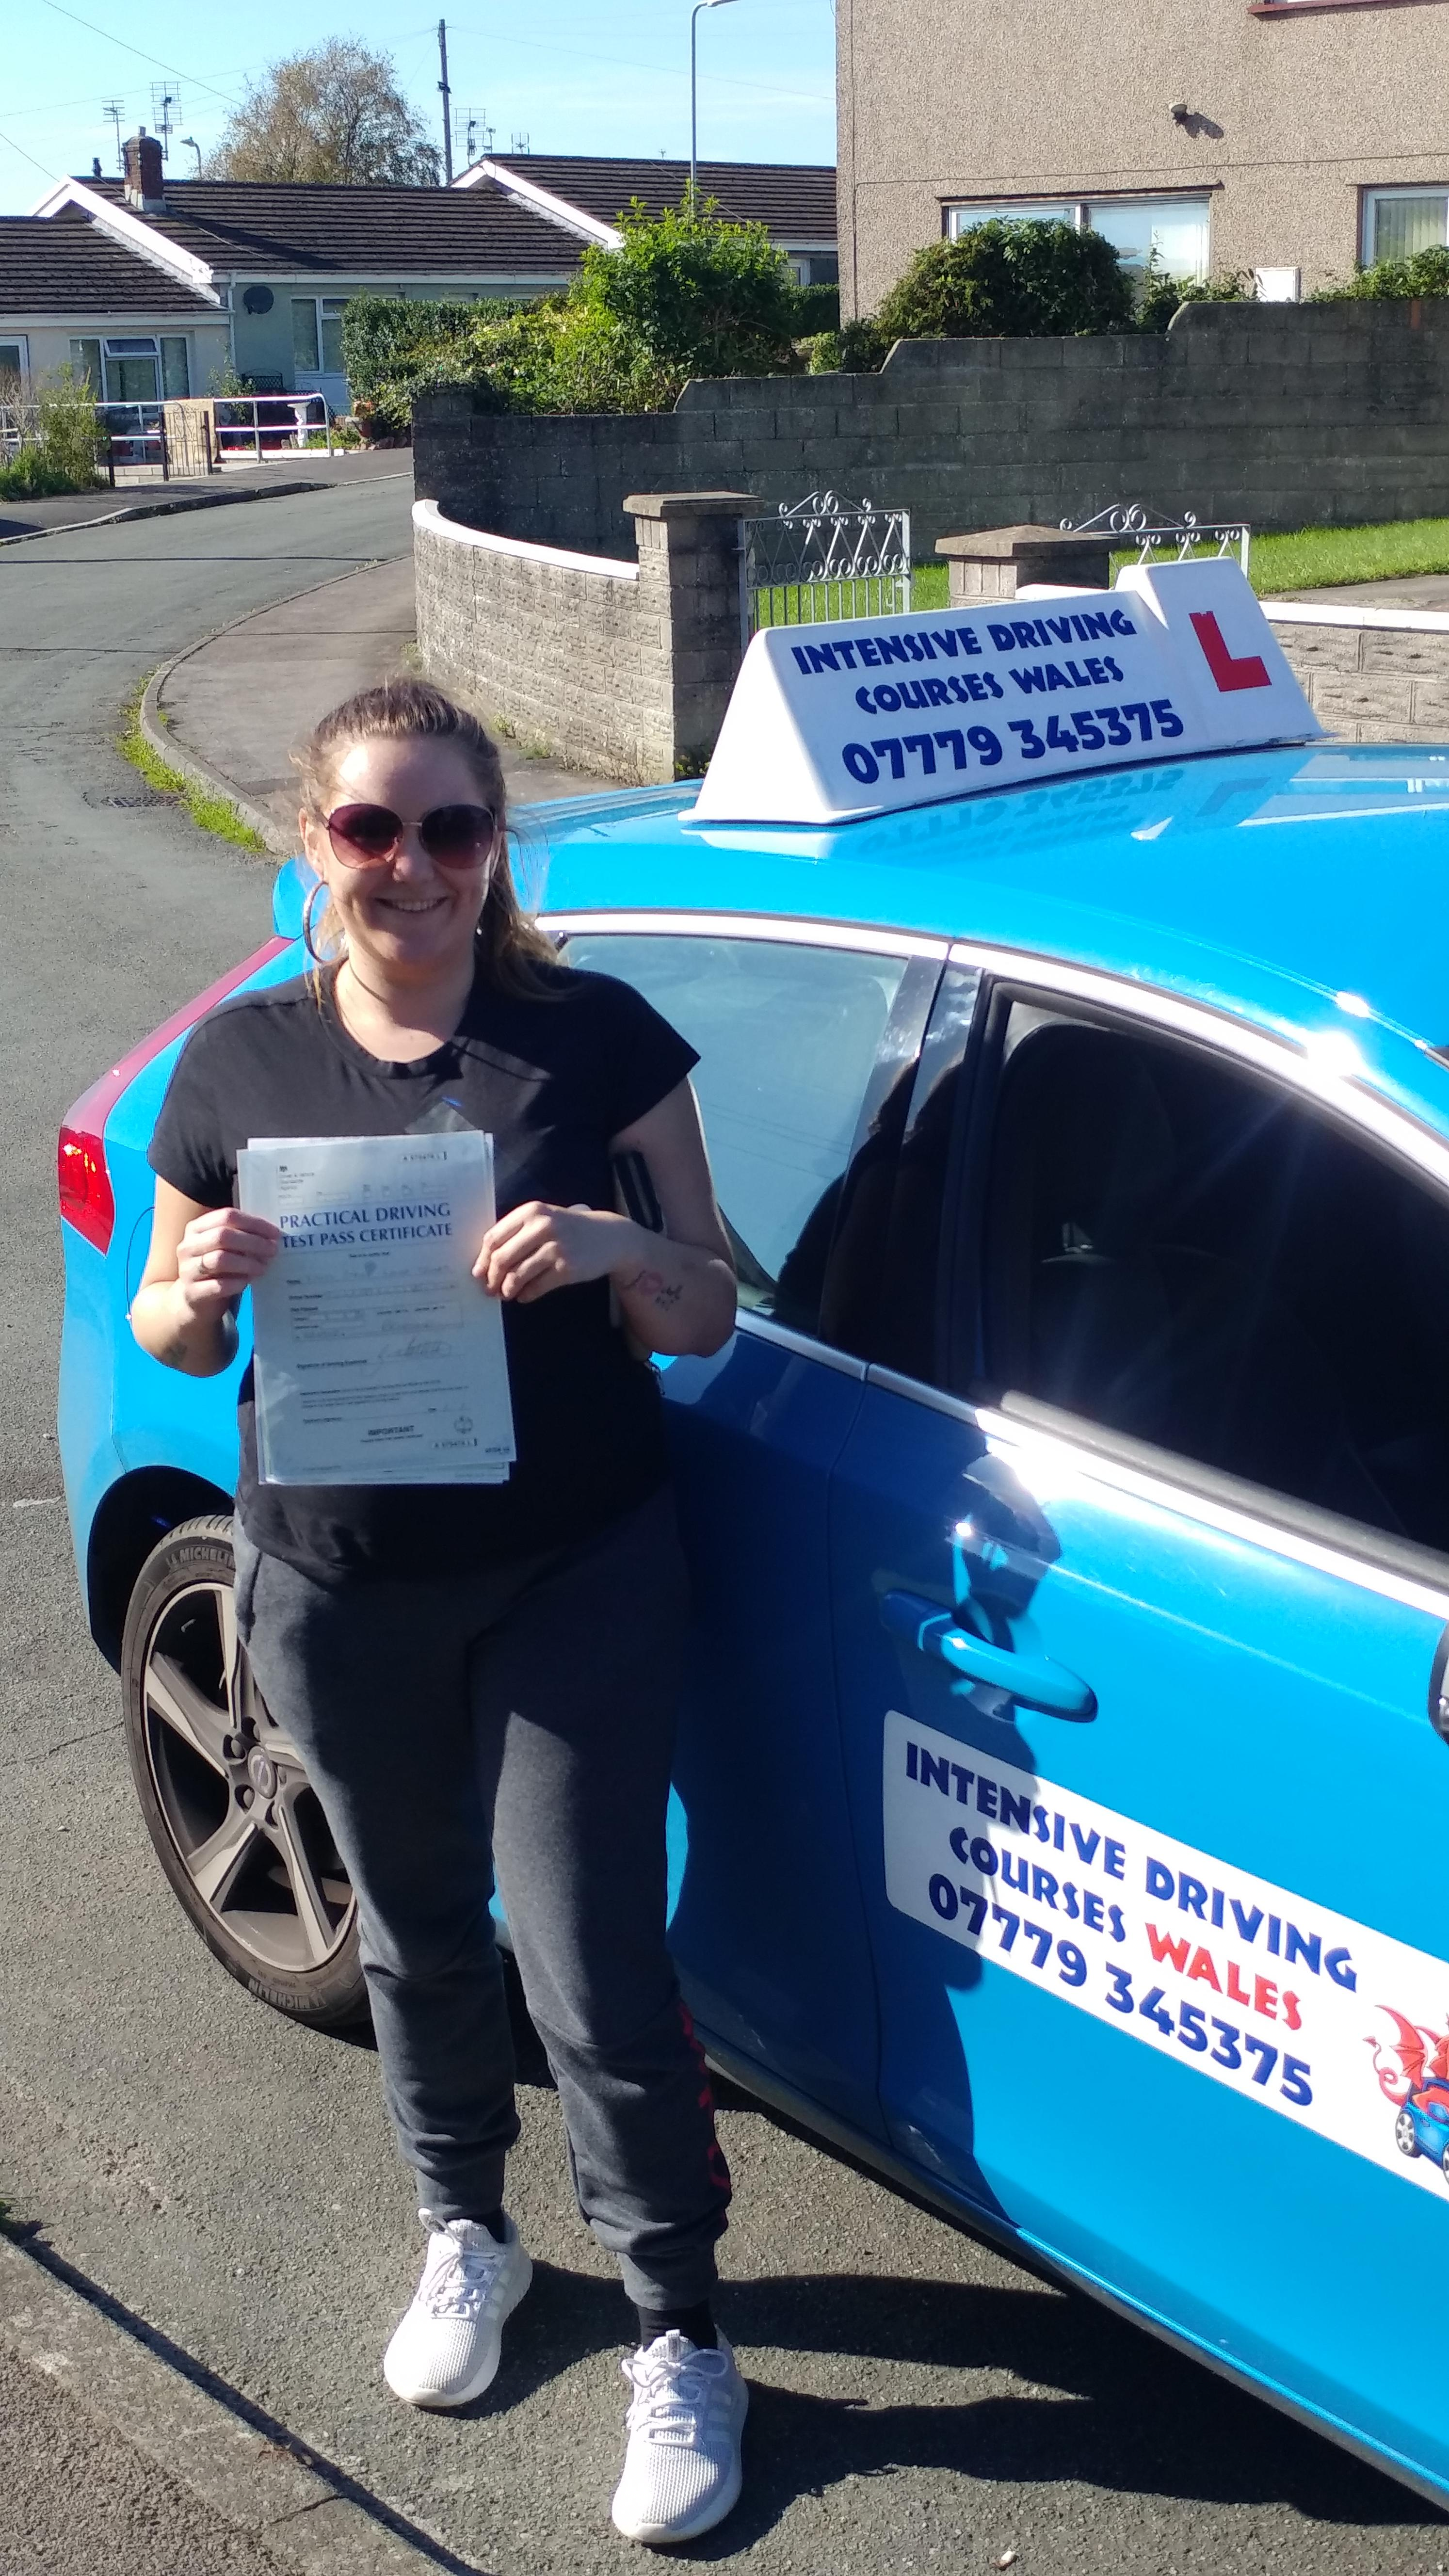 Intensive Driving Courses Wales Driving Test